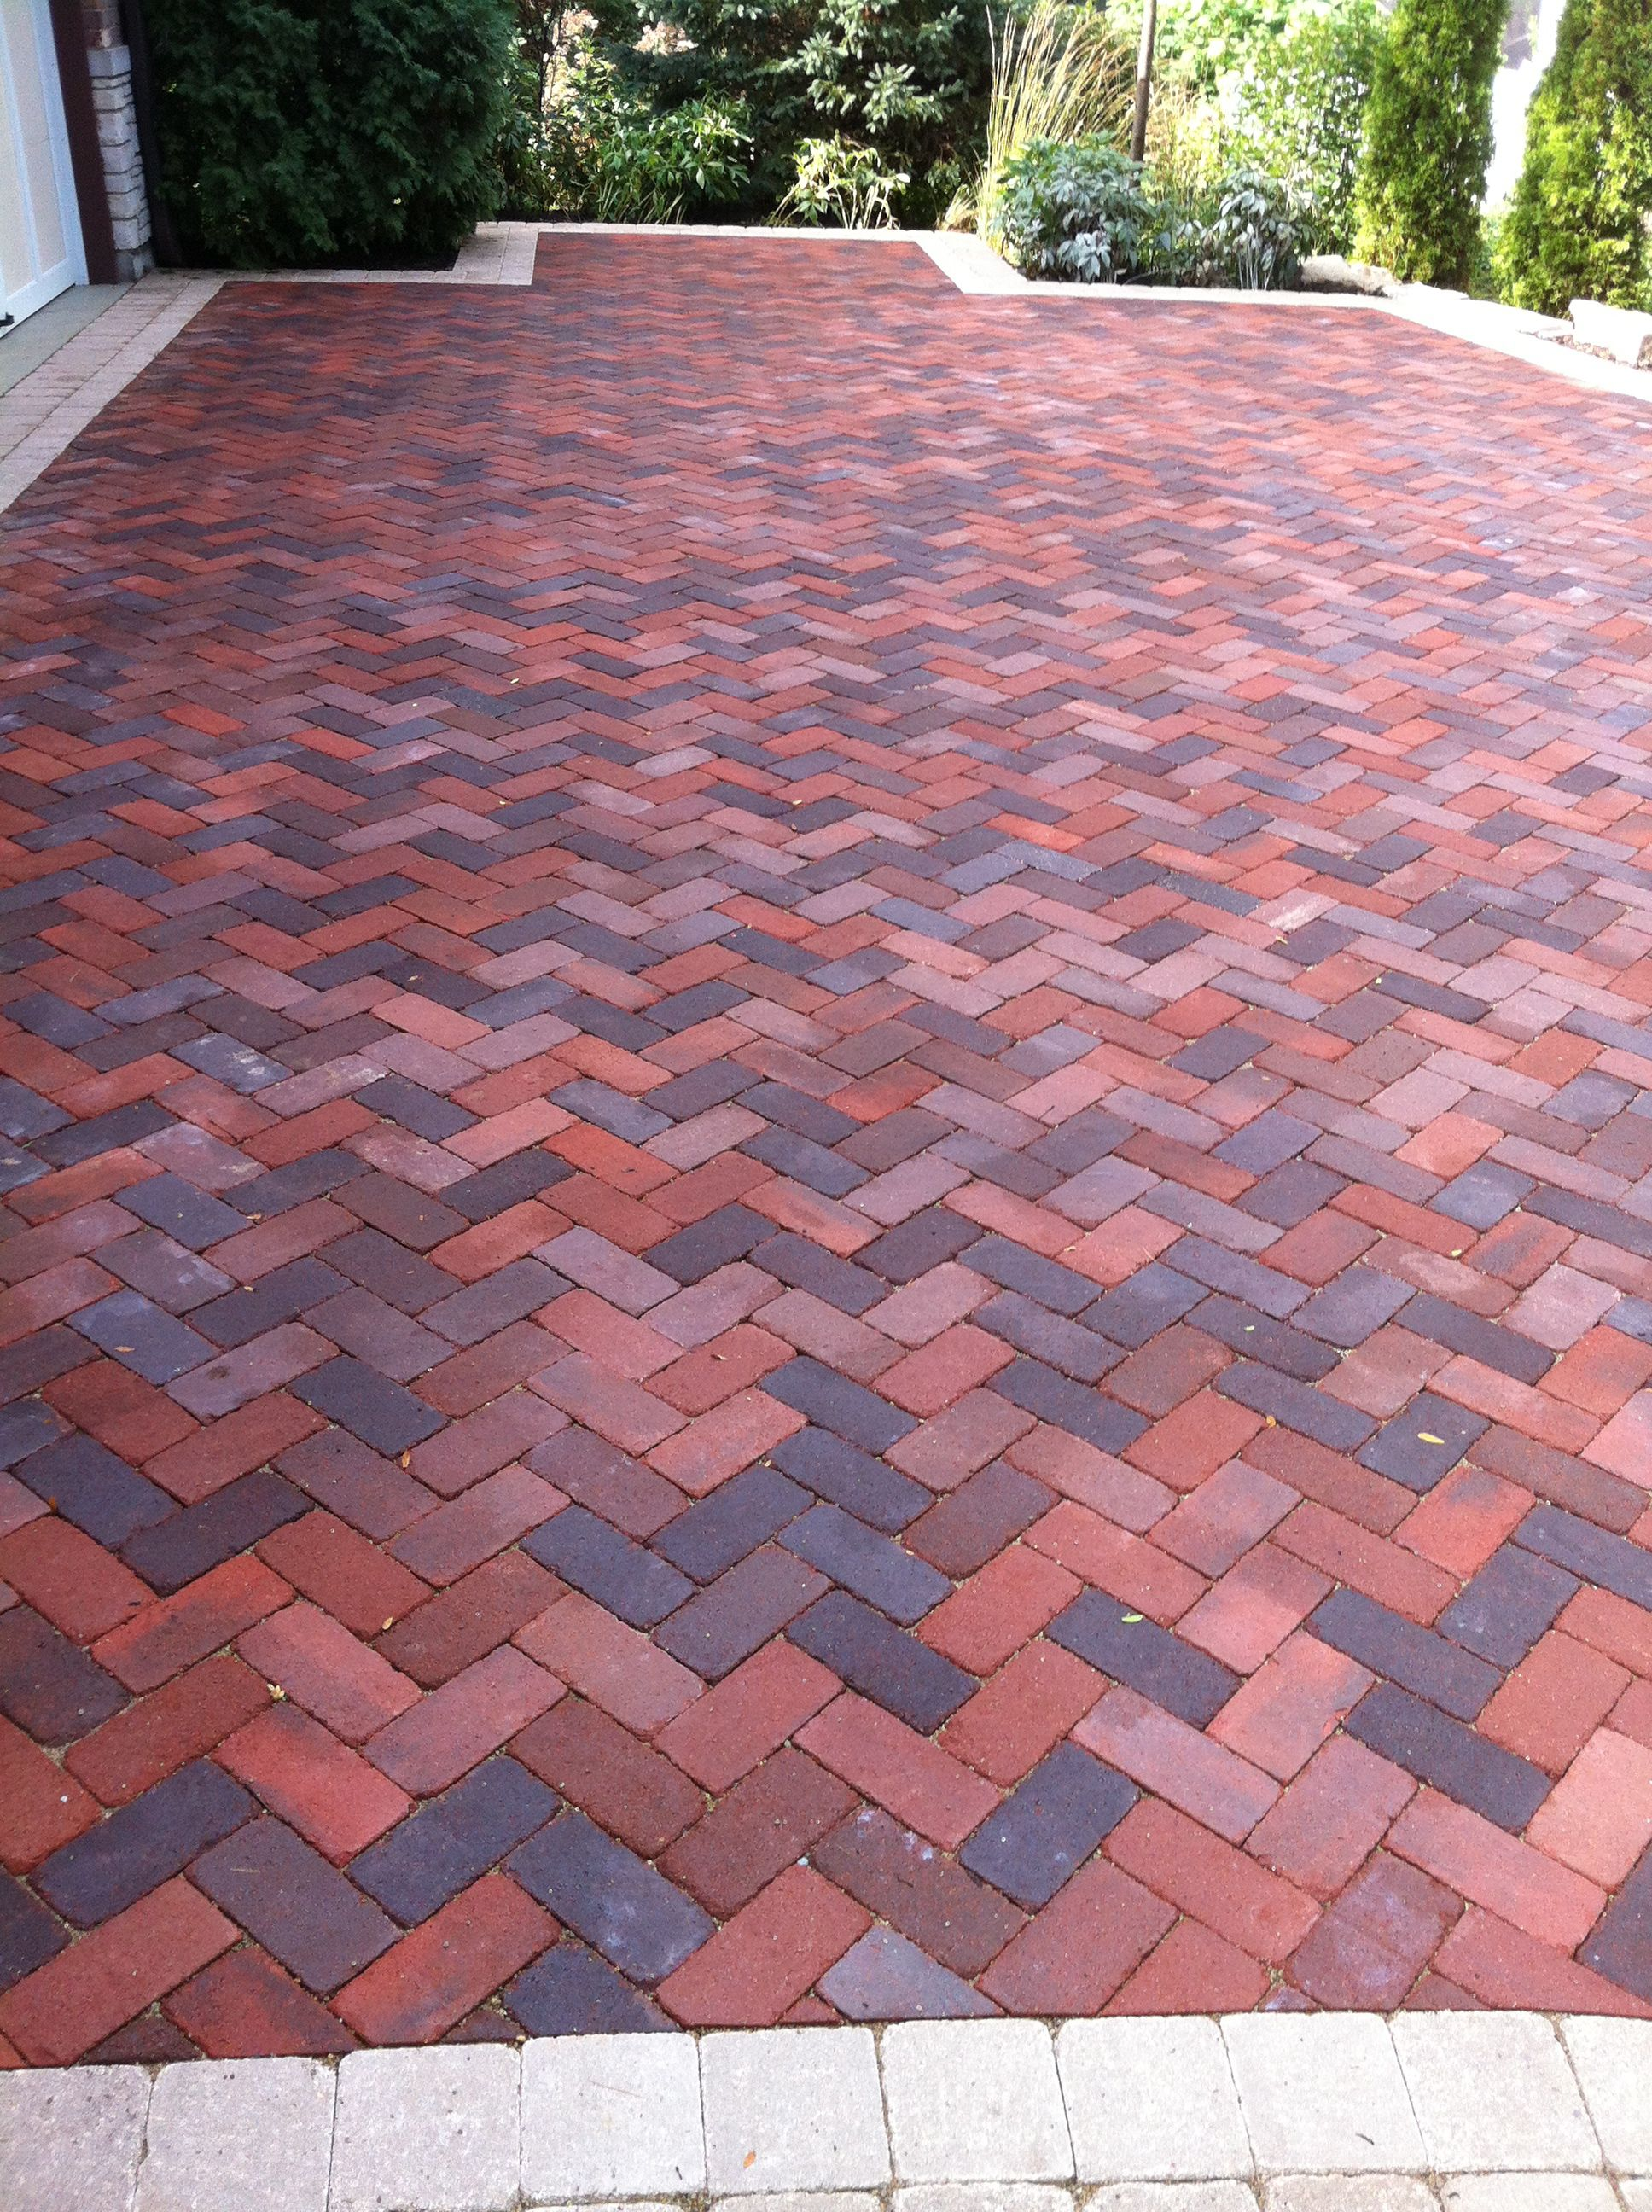 Charming Brick Herringbone Pattern For Patio/driveway.